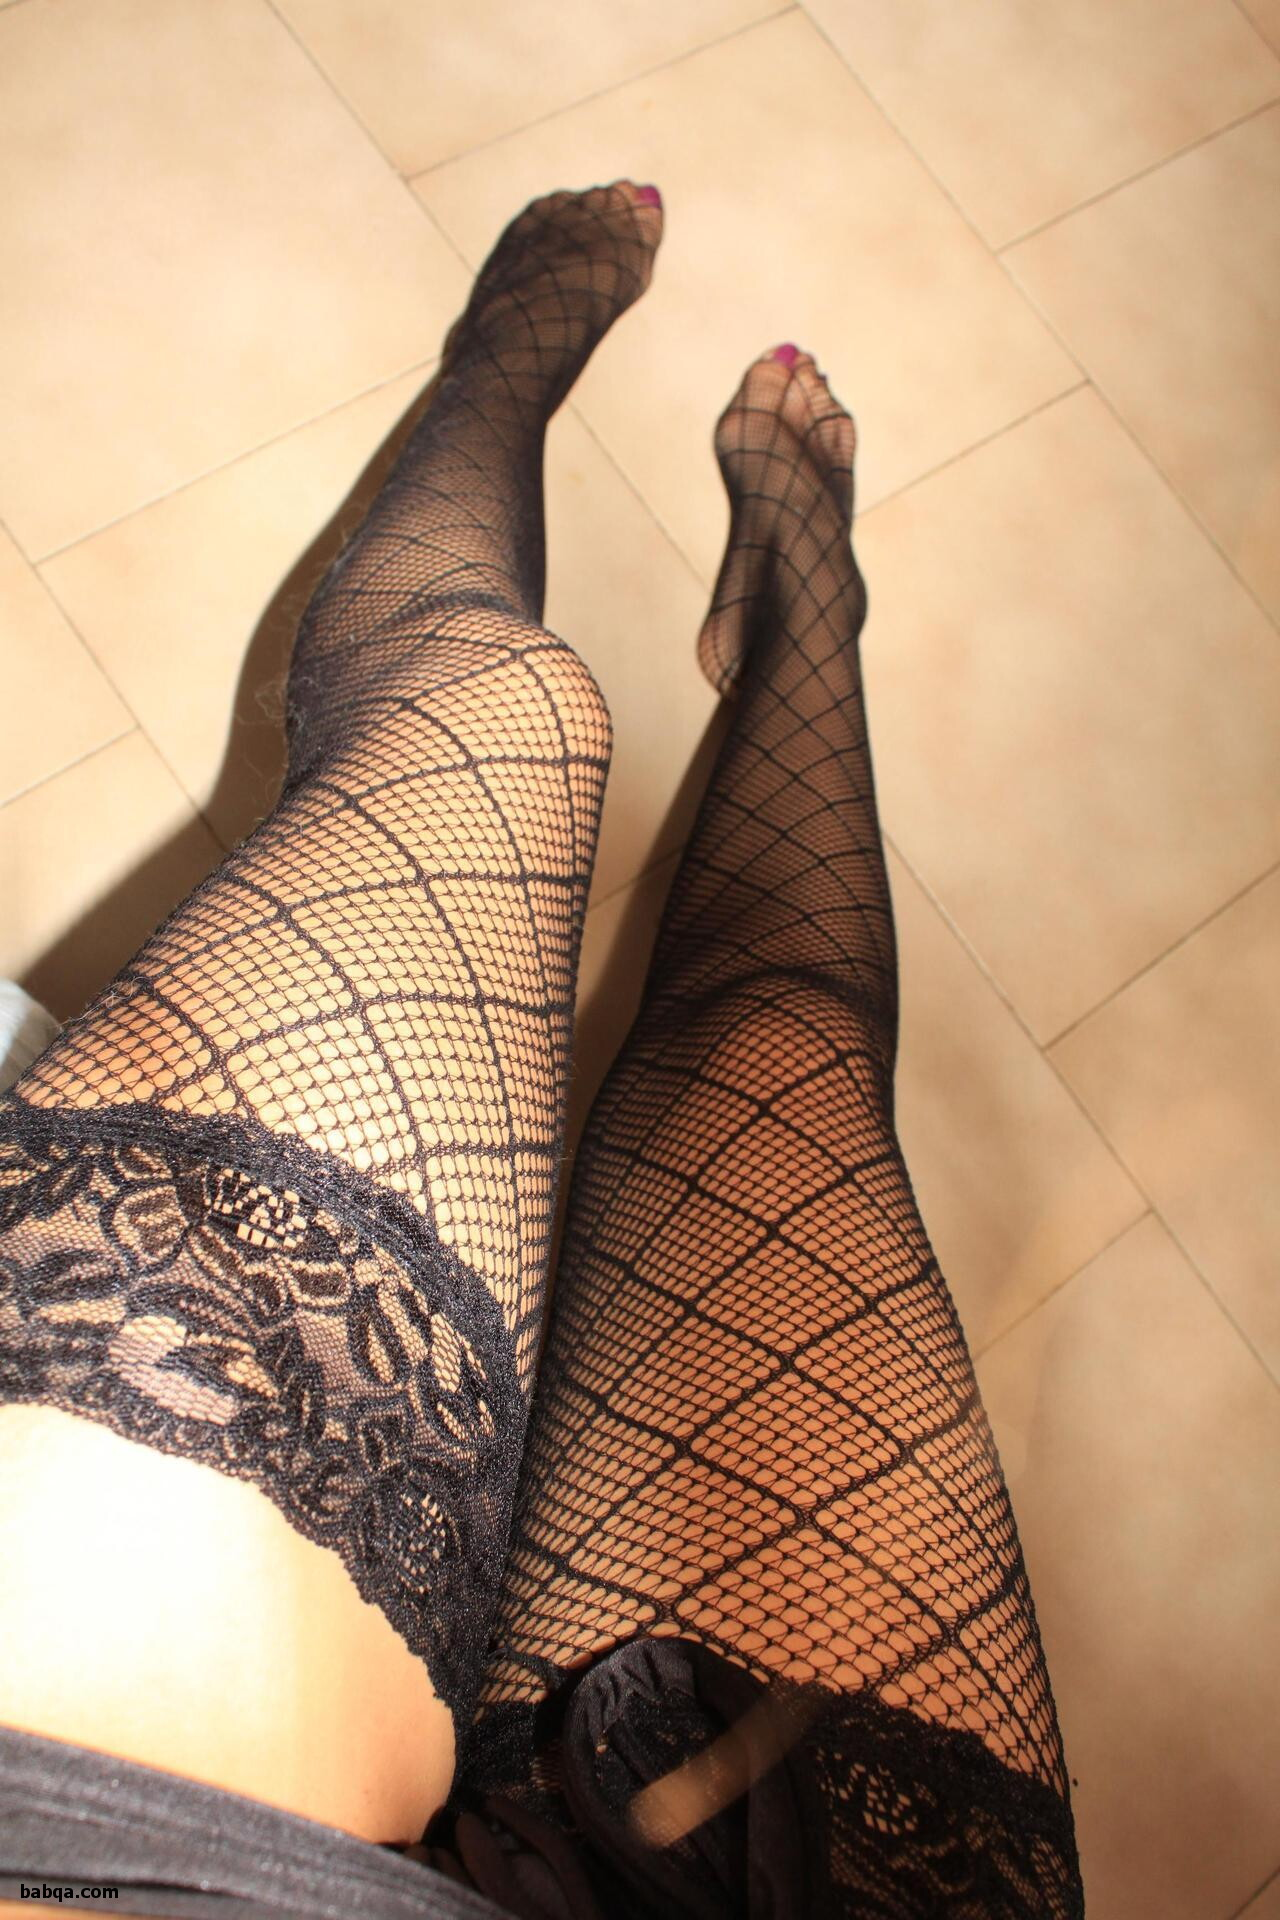 victoria secret thigh high stocking and stockings tease